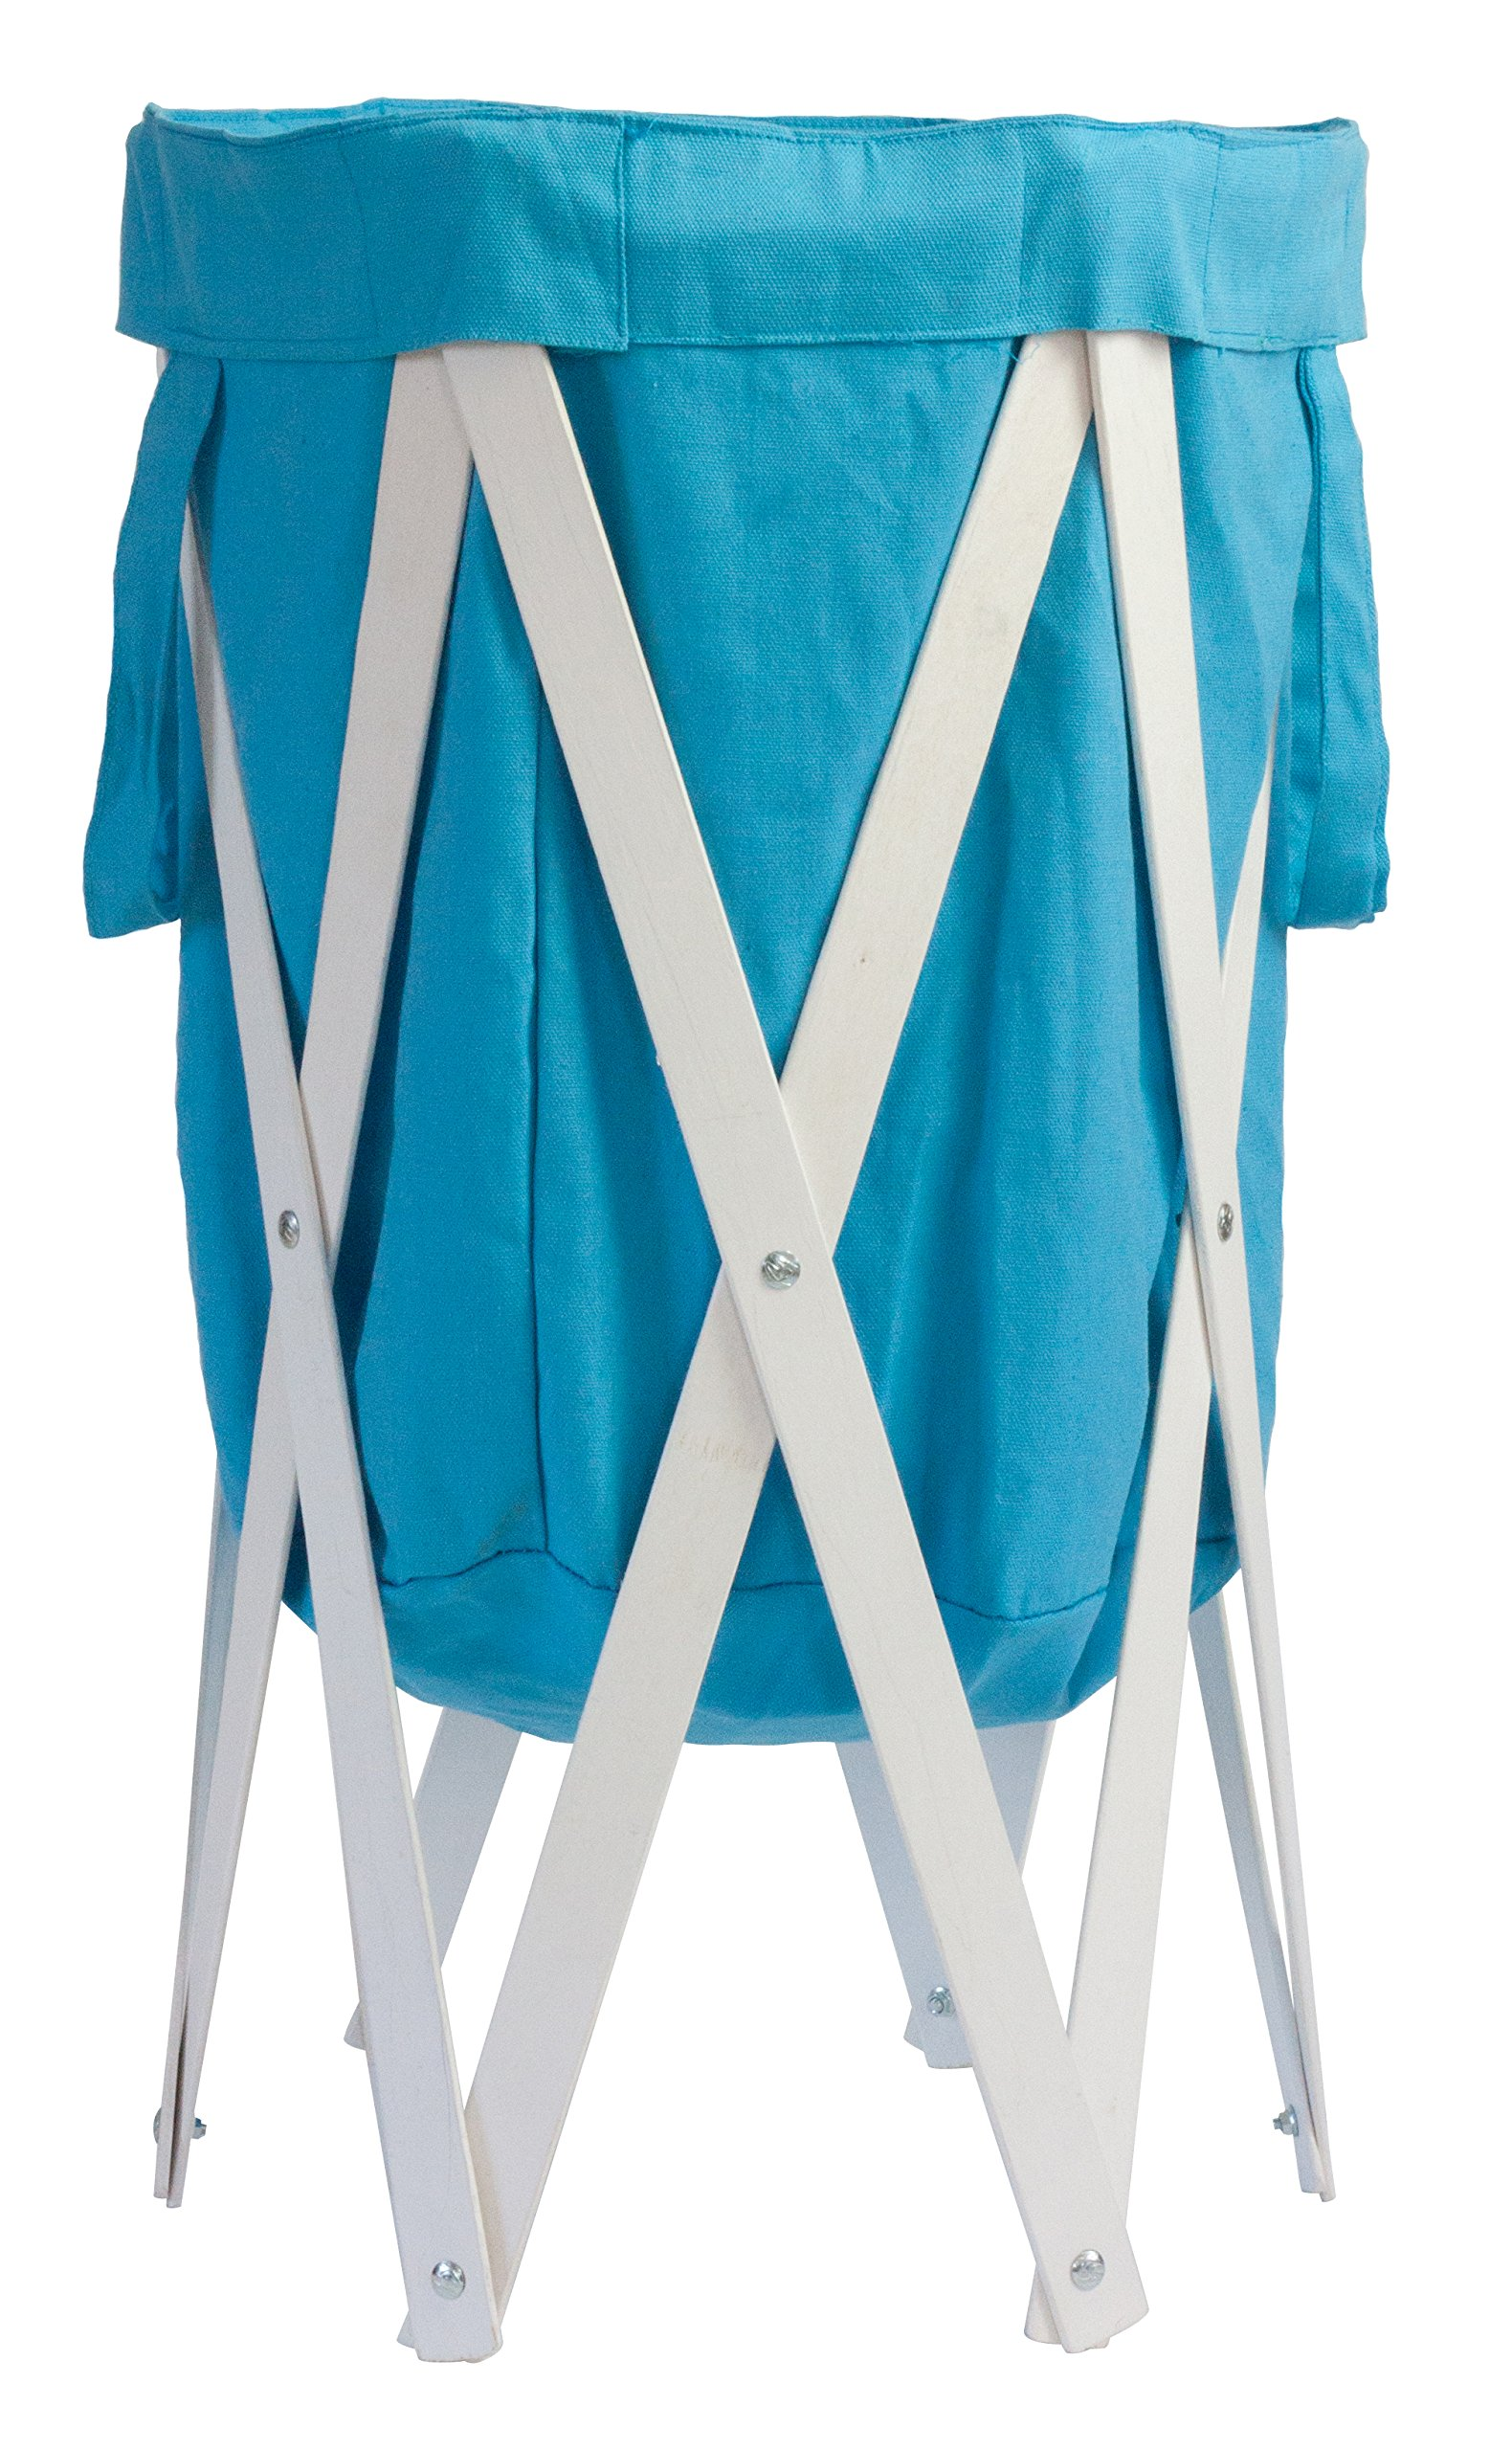 MAX + RAE Collapsible Laundry Hamper with White Wood Frame | Dirty Clothes Storage | Removable Fabric Bag with Handles, Easy to Carry and Clean | Nursery, Kids Bedroom, Bathroom (Baby Blue)